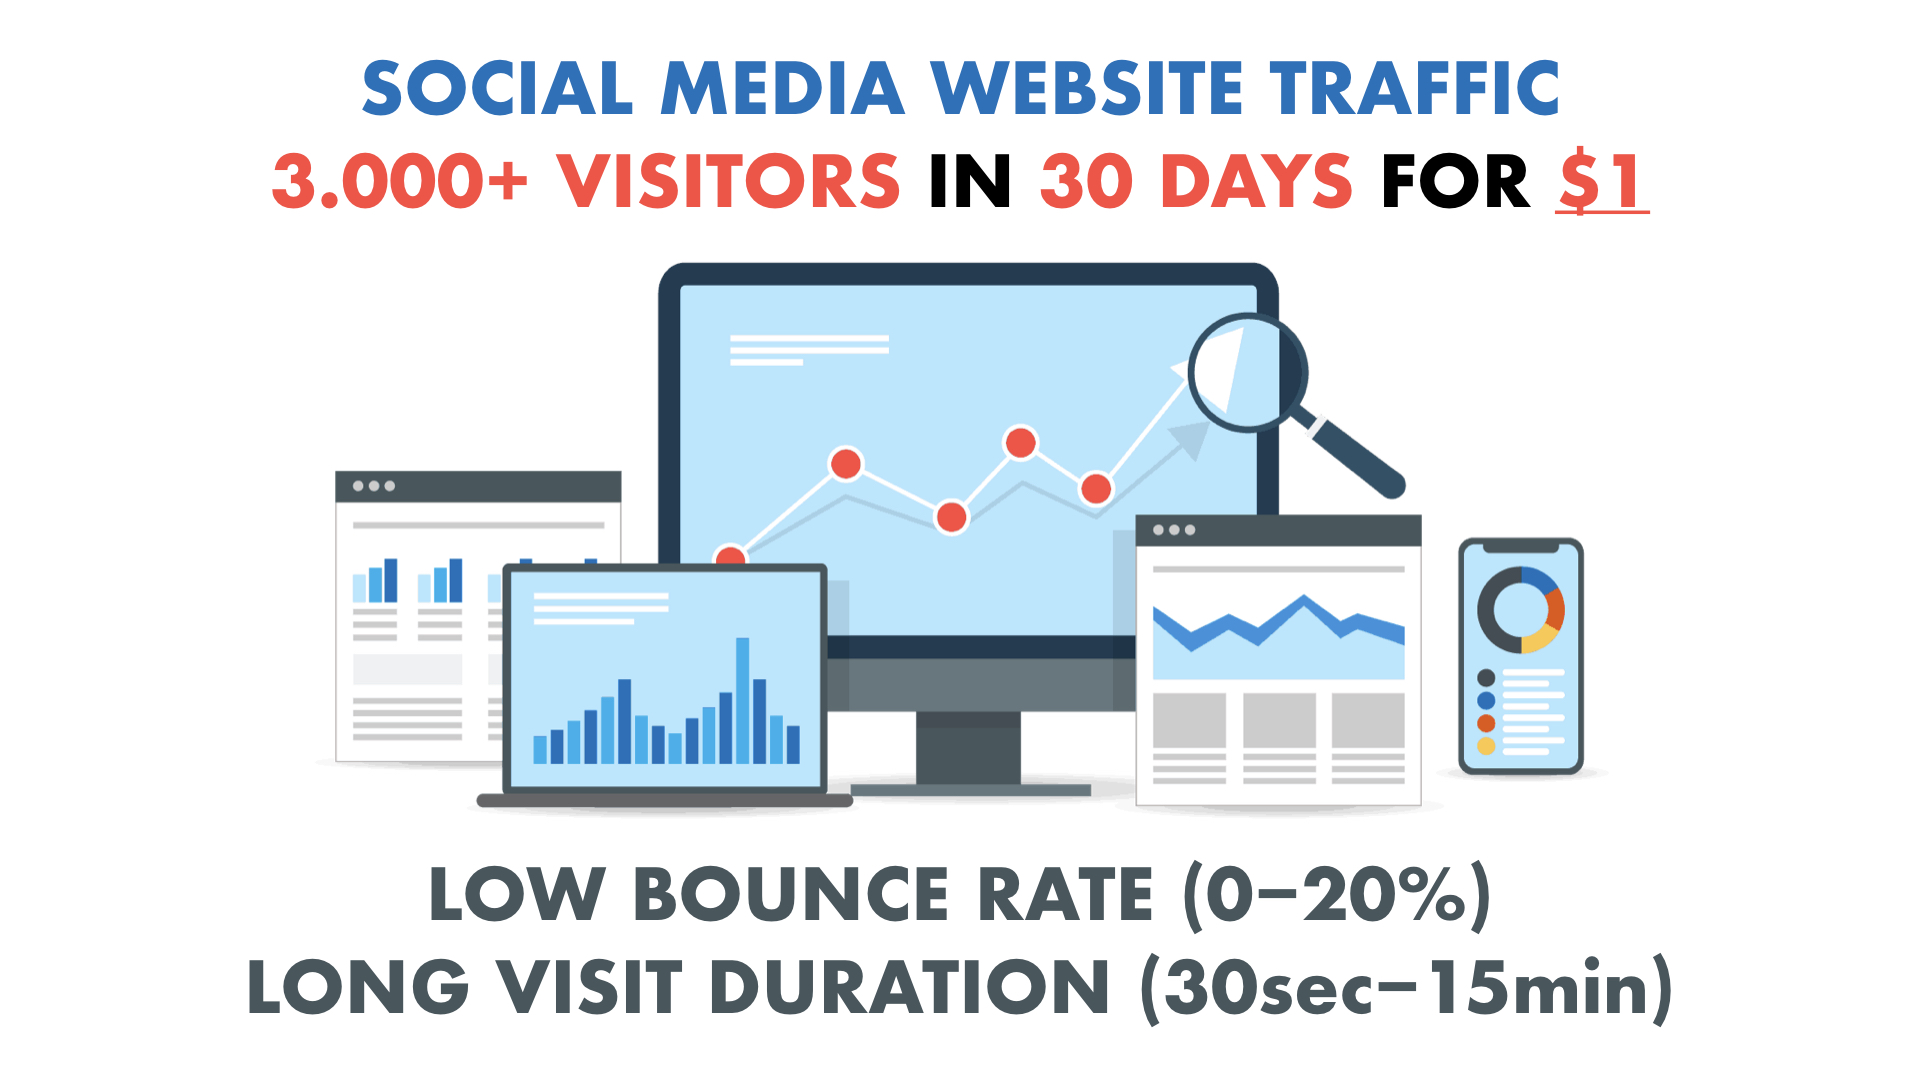 SOCIAL MEDIA Website Traffic with Low Bounce Rate and Long Visit Duration for 30 days